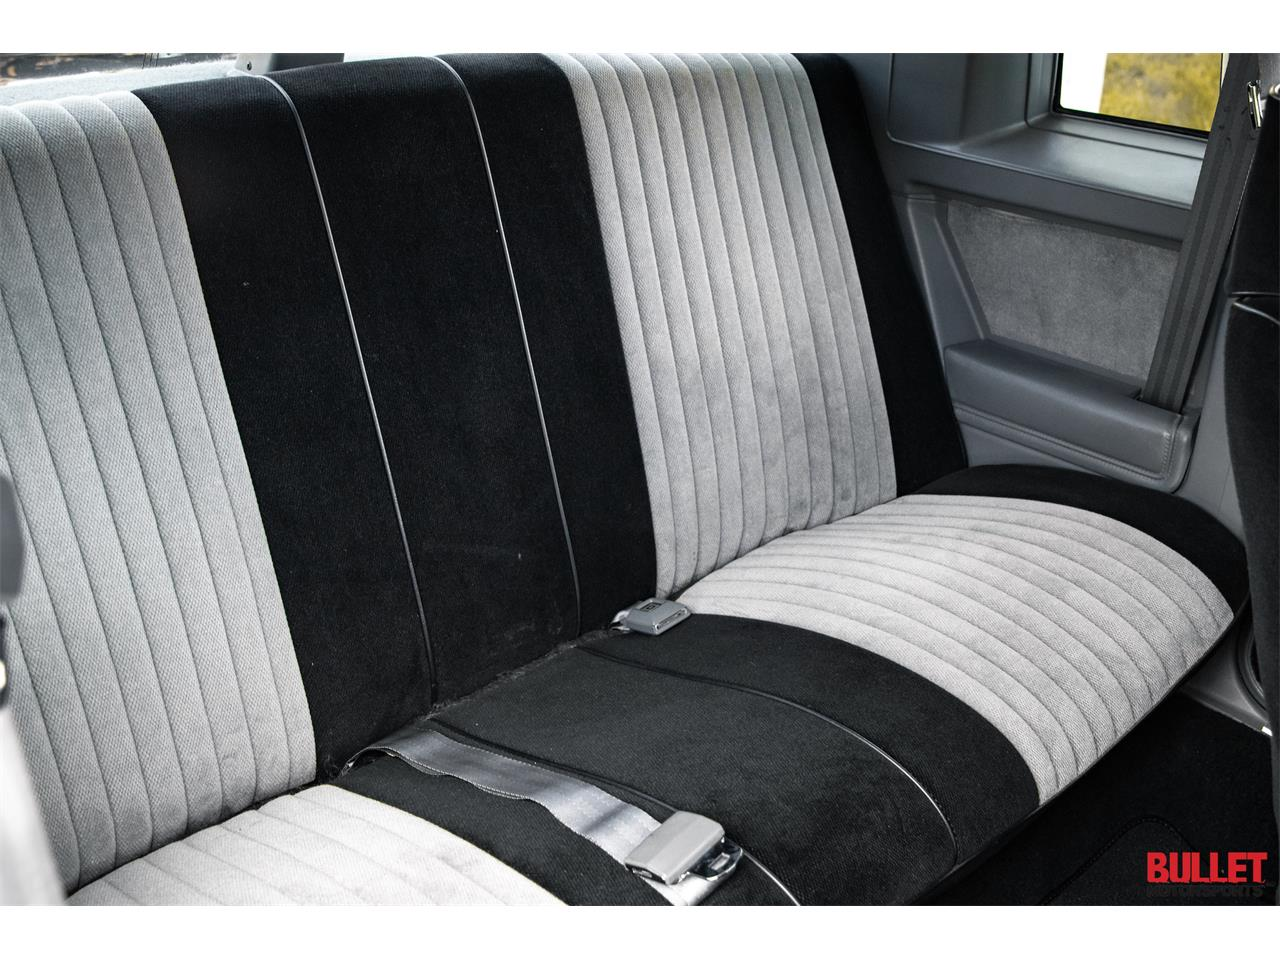 Large Picture of '87 Buick Grand National located in Florida - $30,550.00 - PSK7